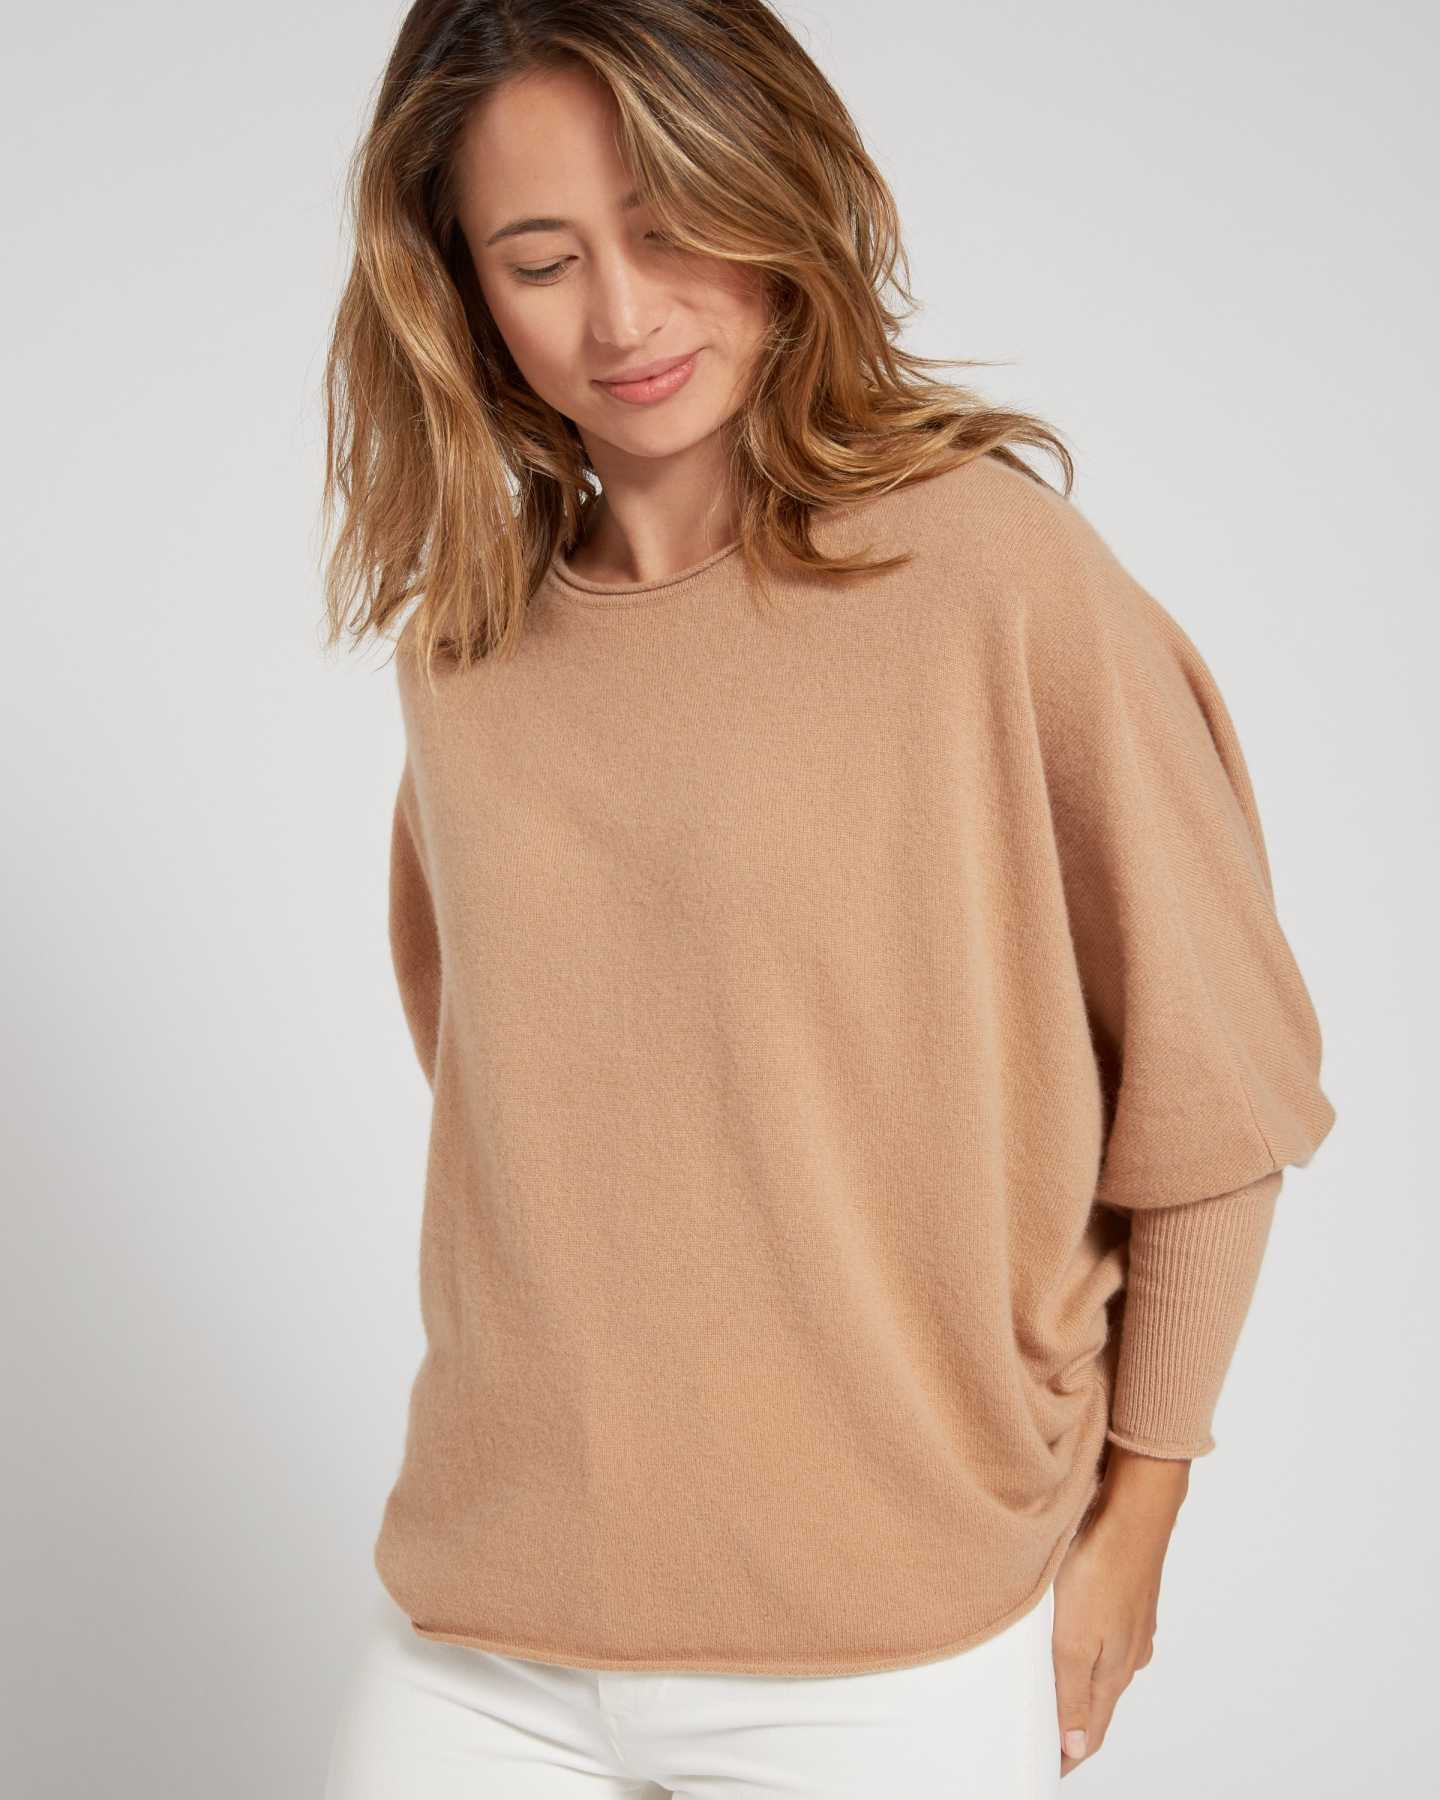 You May Also Like - Mongolian Cashmere Batwing Sweater - Camel